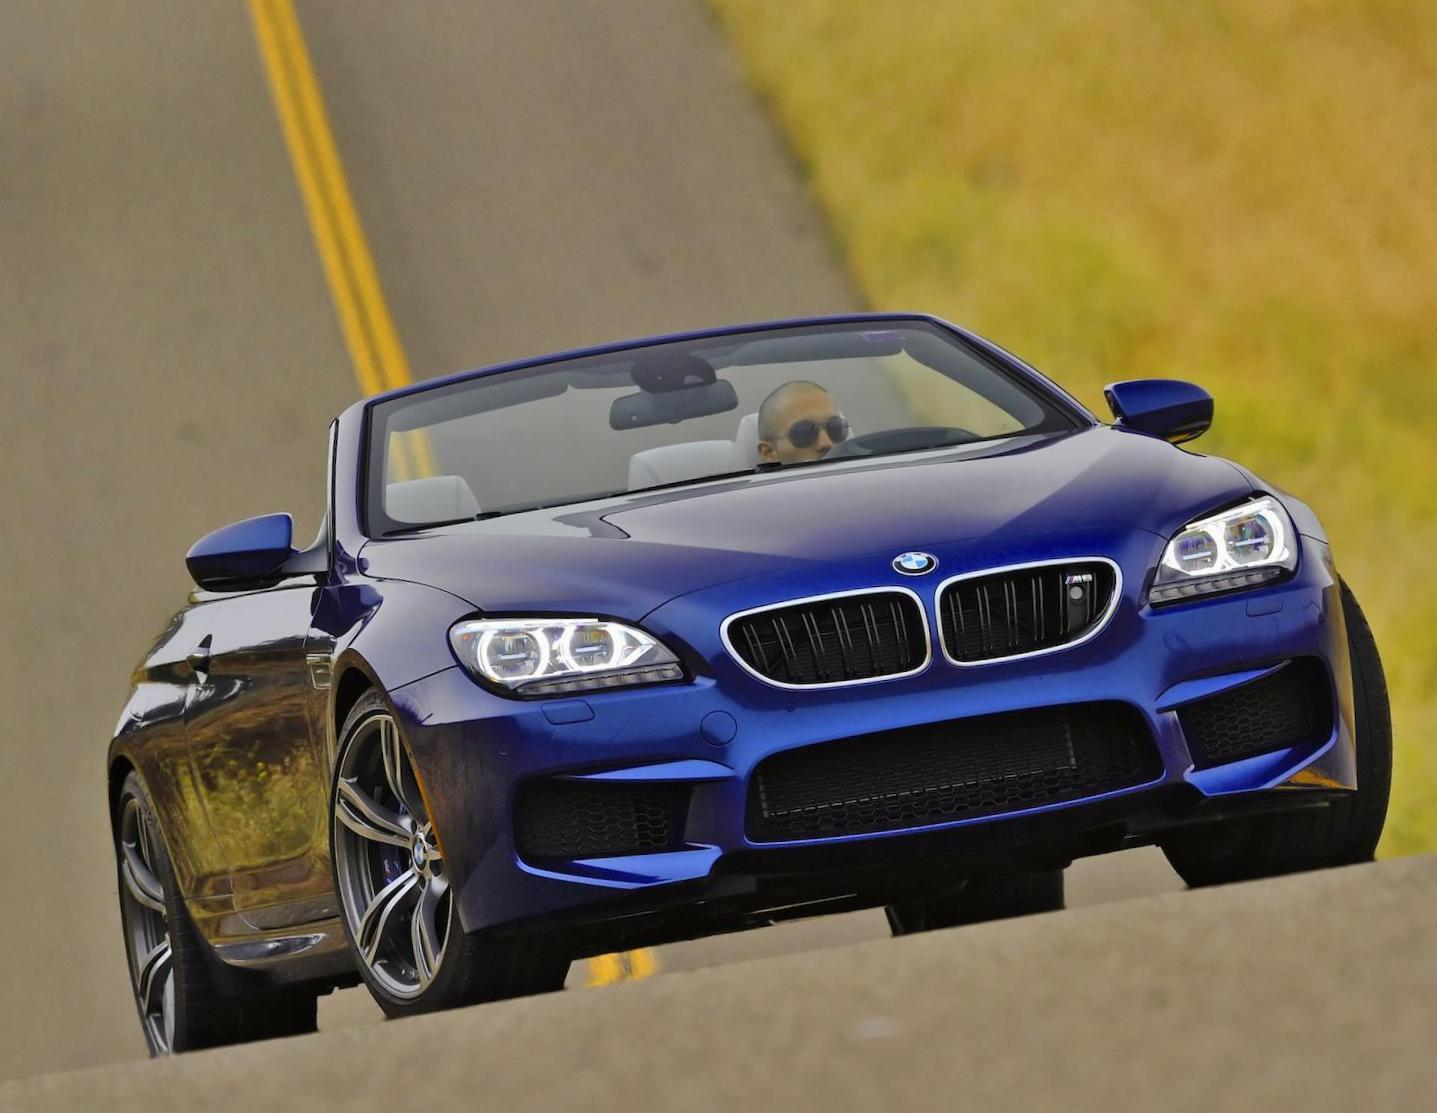 BMW M6 Cabrio (F12) Specification suv